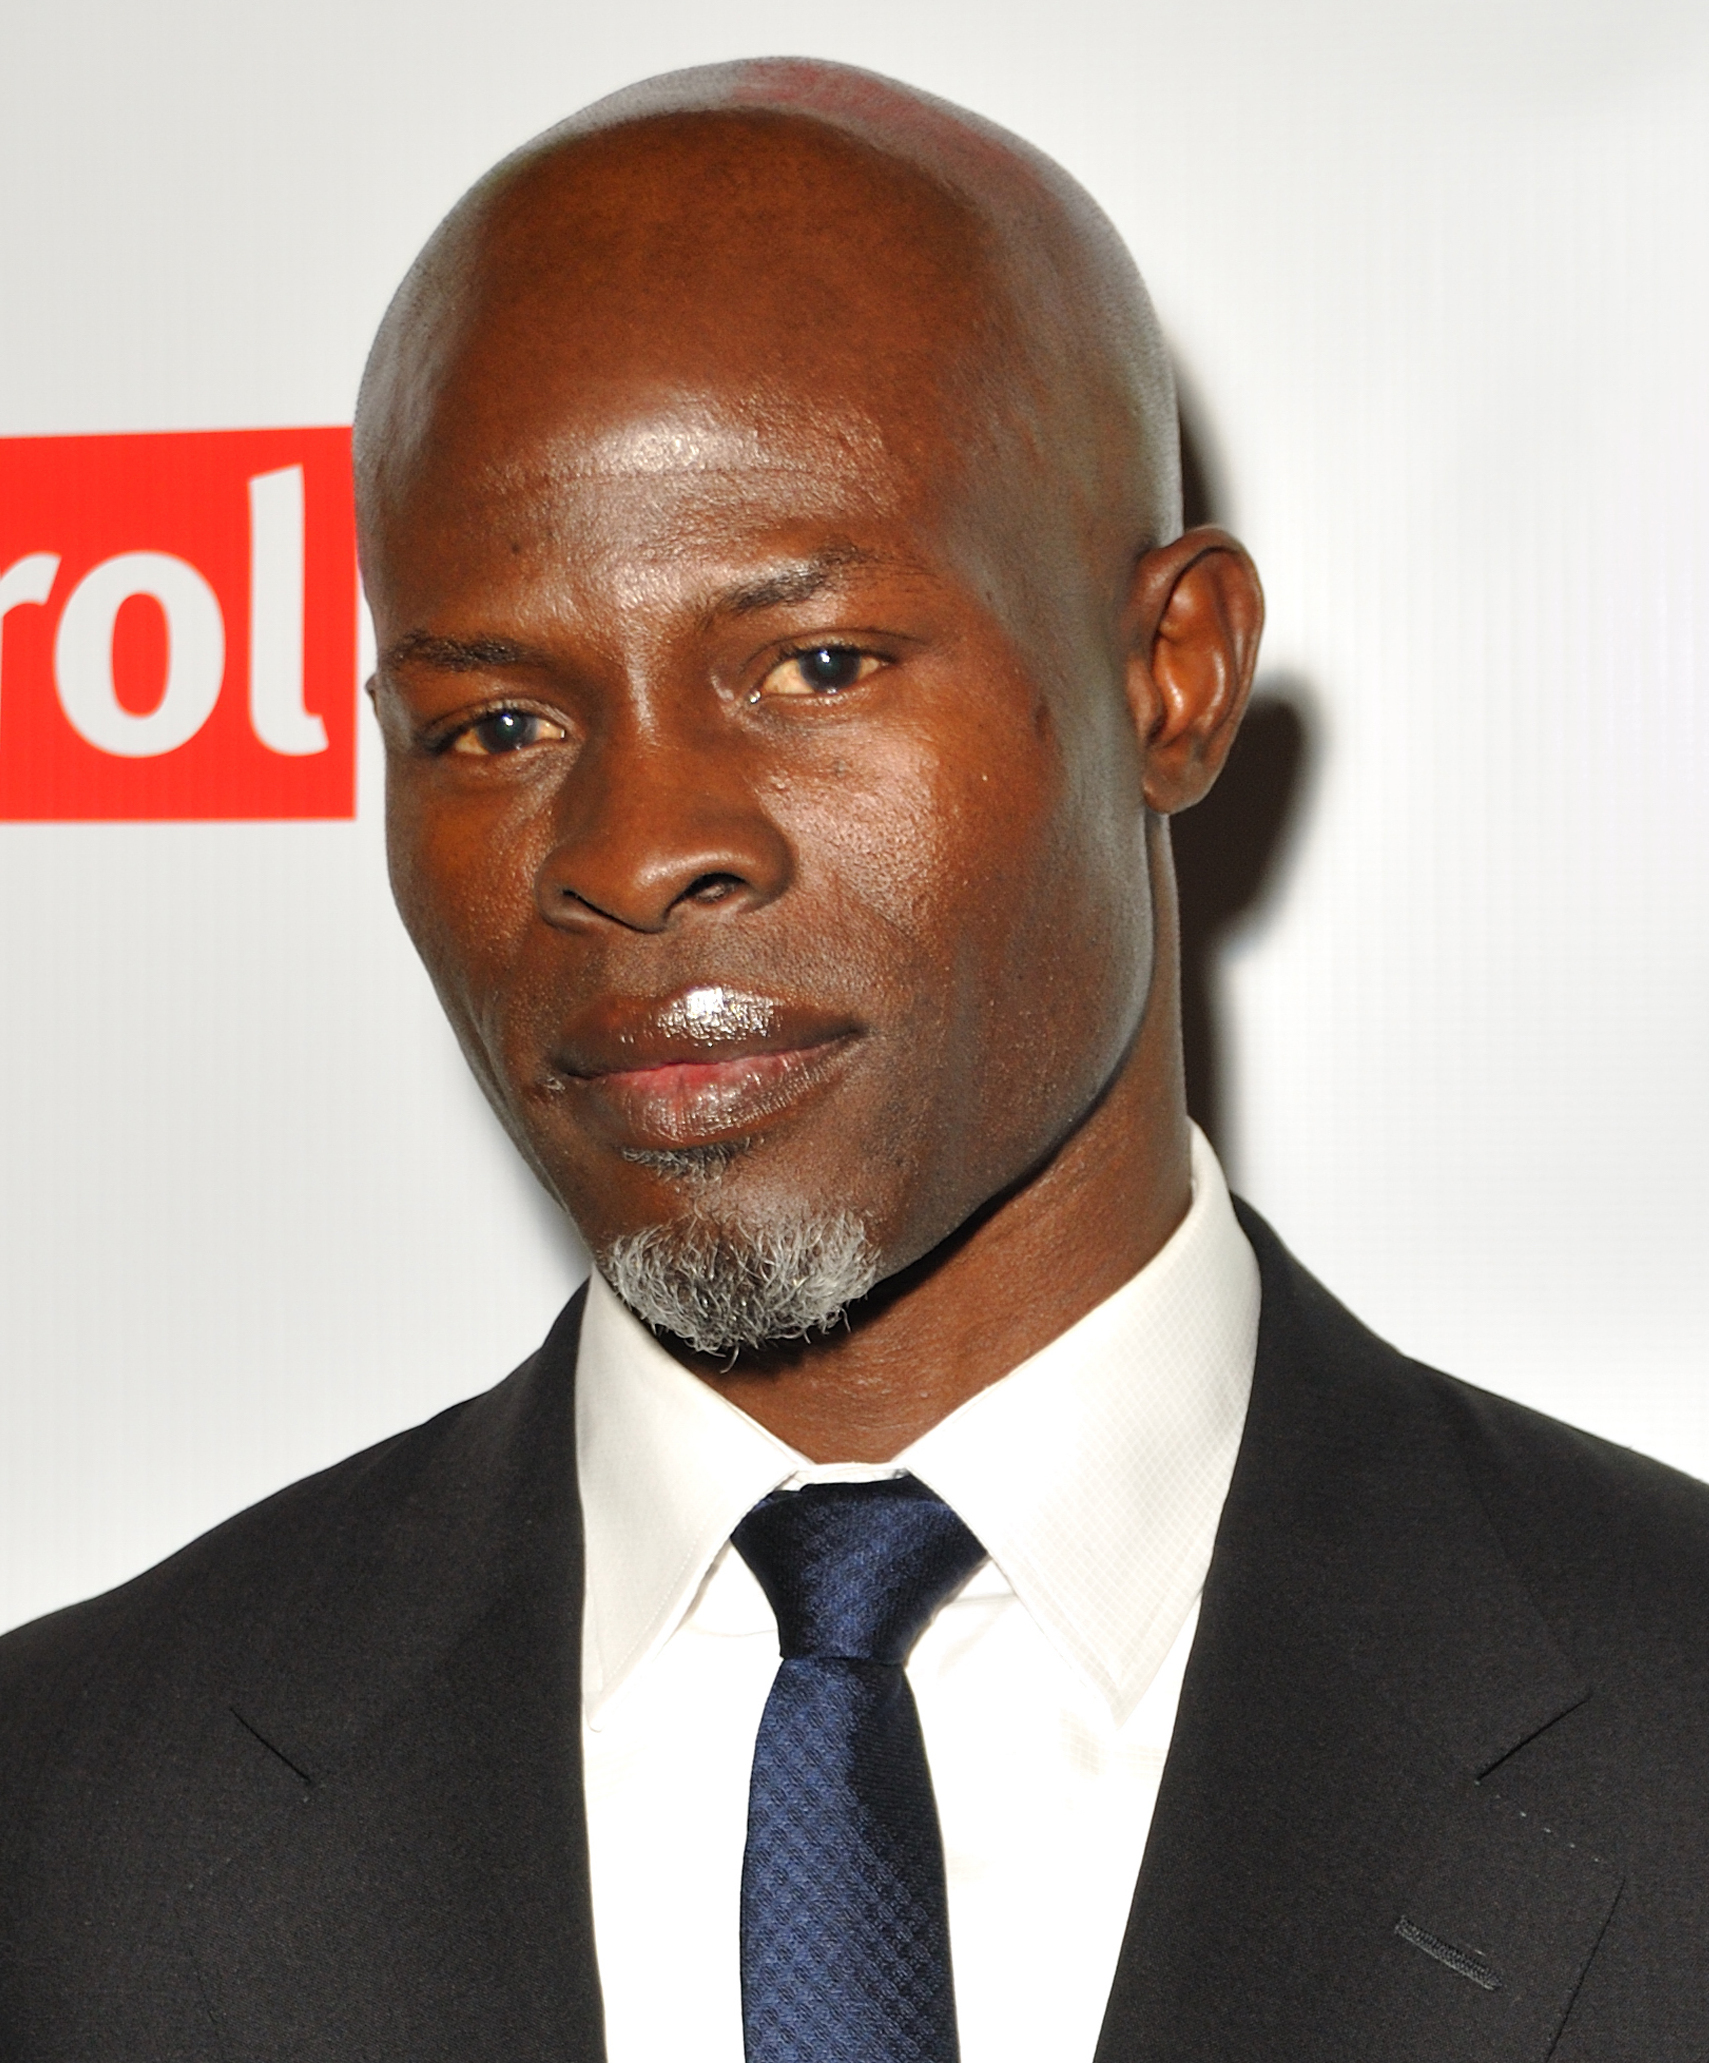 The 52-year old son of father Pierre Hounsou and mother Albertine Hounsou, 193 cm tall Djimon Hounsou in 2017 photo